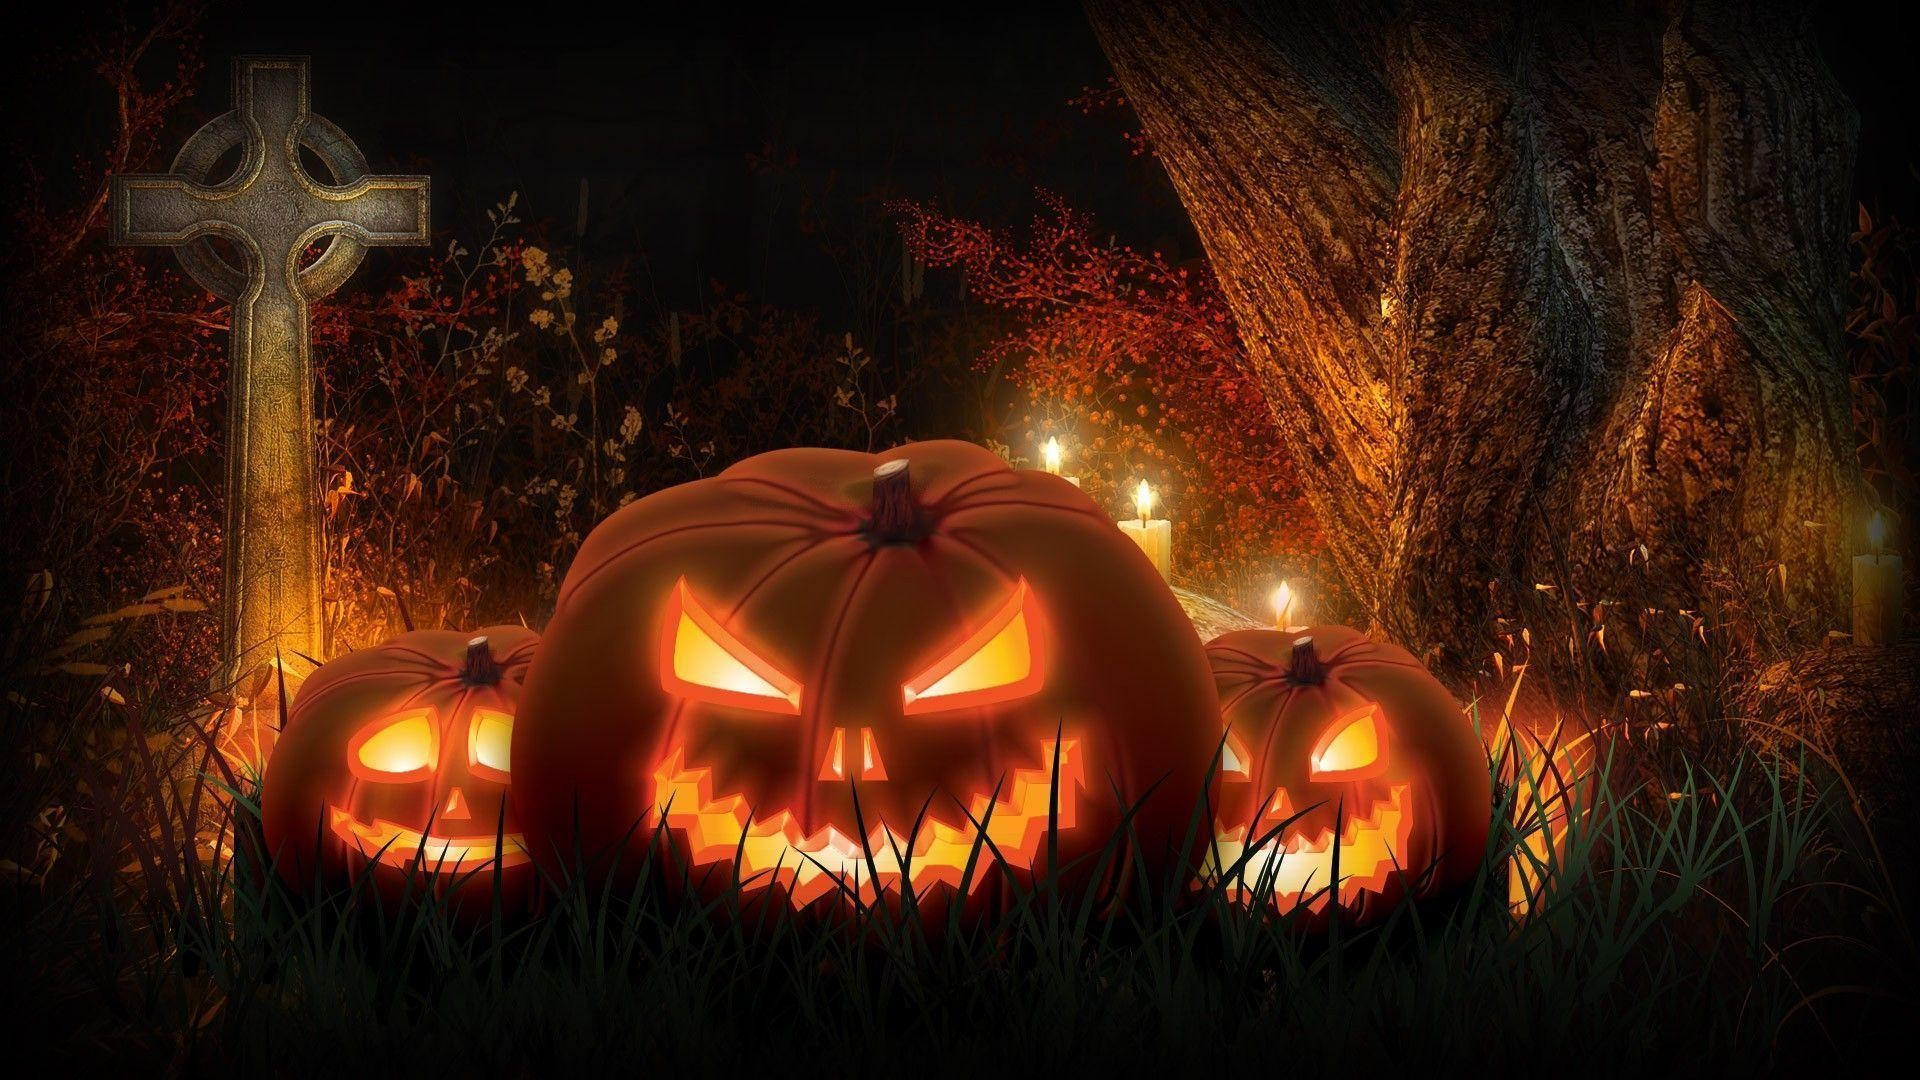 Scary Halloween Pumpkin Wallpaper 1080p Halloween Jack O Lantern